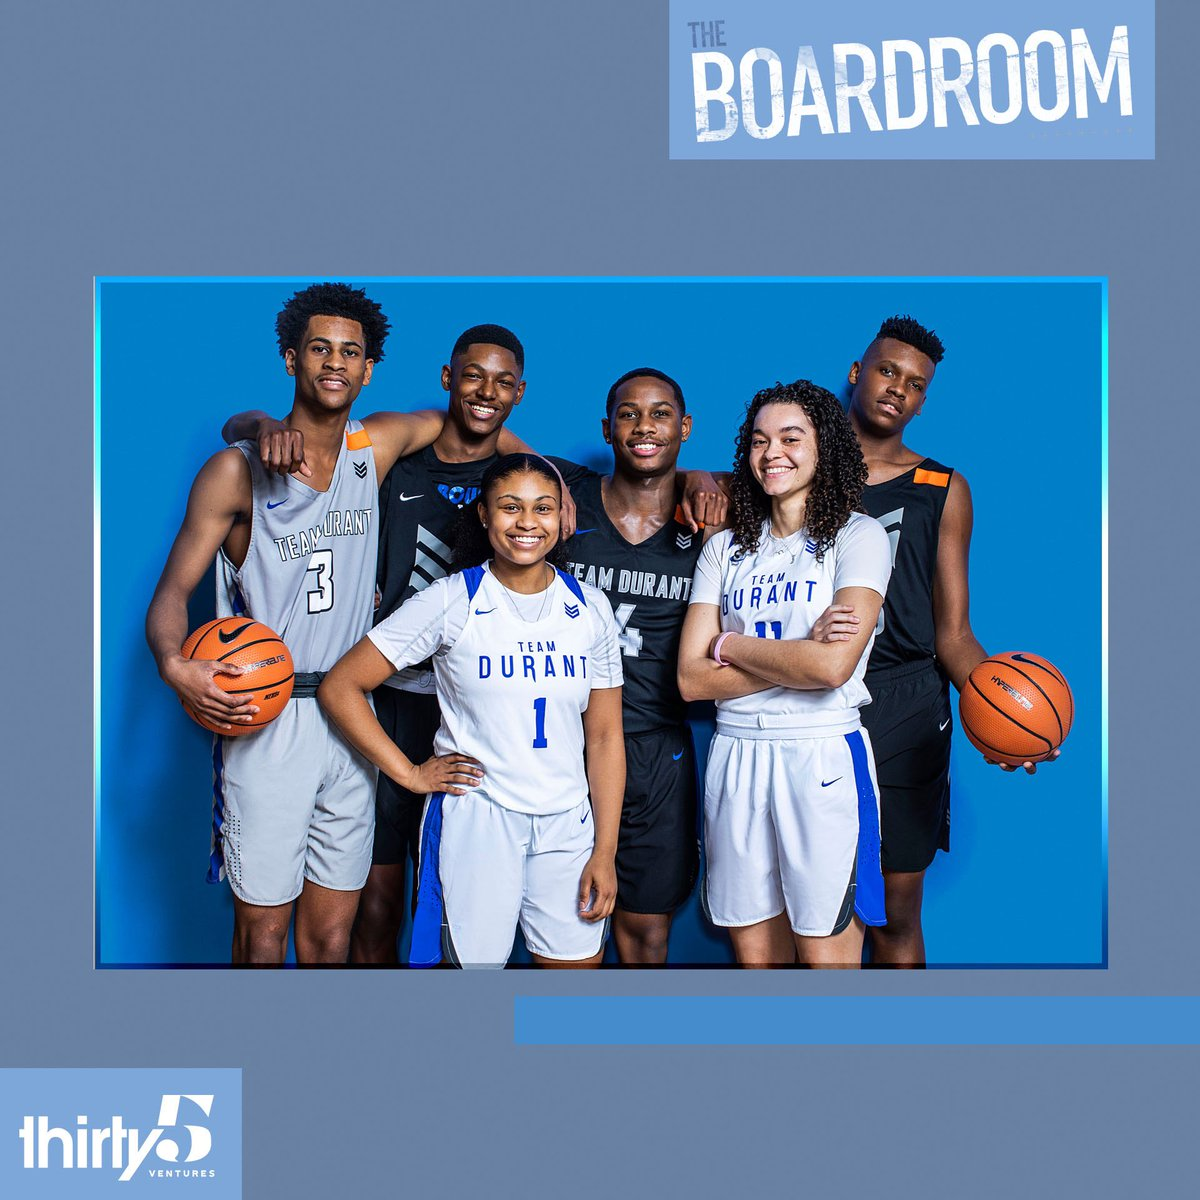 The Boardroom issue of ESPN Mag is on stands now, including a feature on @teamdurantaau @teamdurantgirls by @Schultz_Report. Six players discuss their future plans: https://es.pn/2EbNlFv